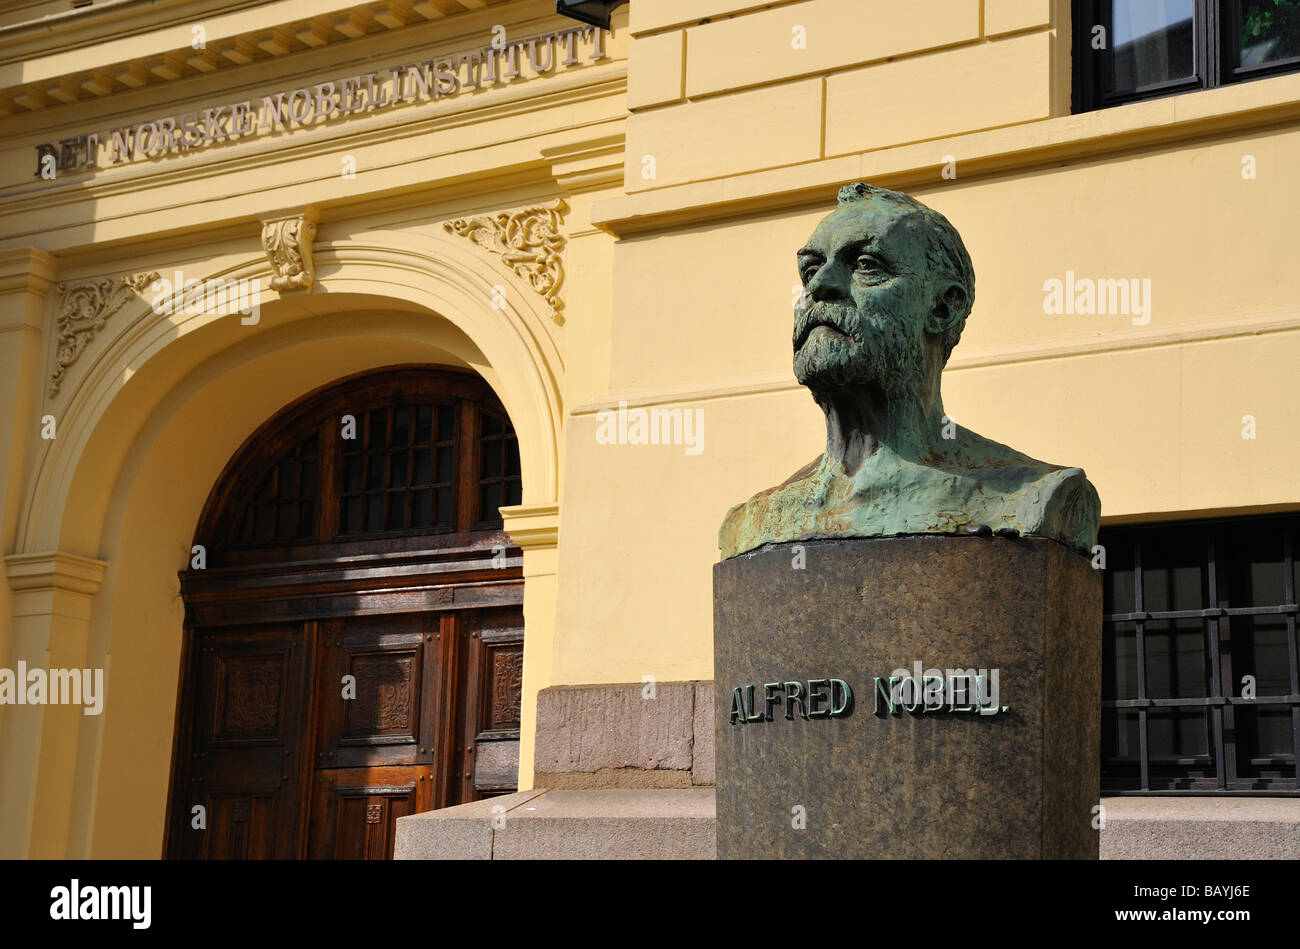 Bust of Alfred Nobel at the Nobel Prize Institute in Oslo, Norway. - Stock Image